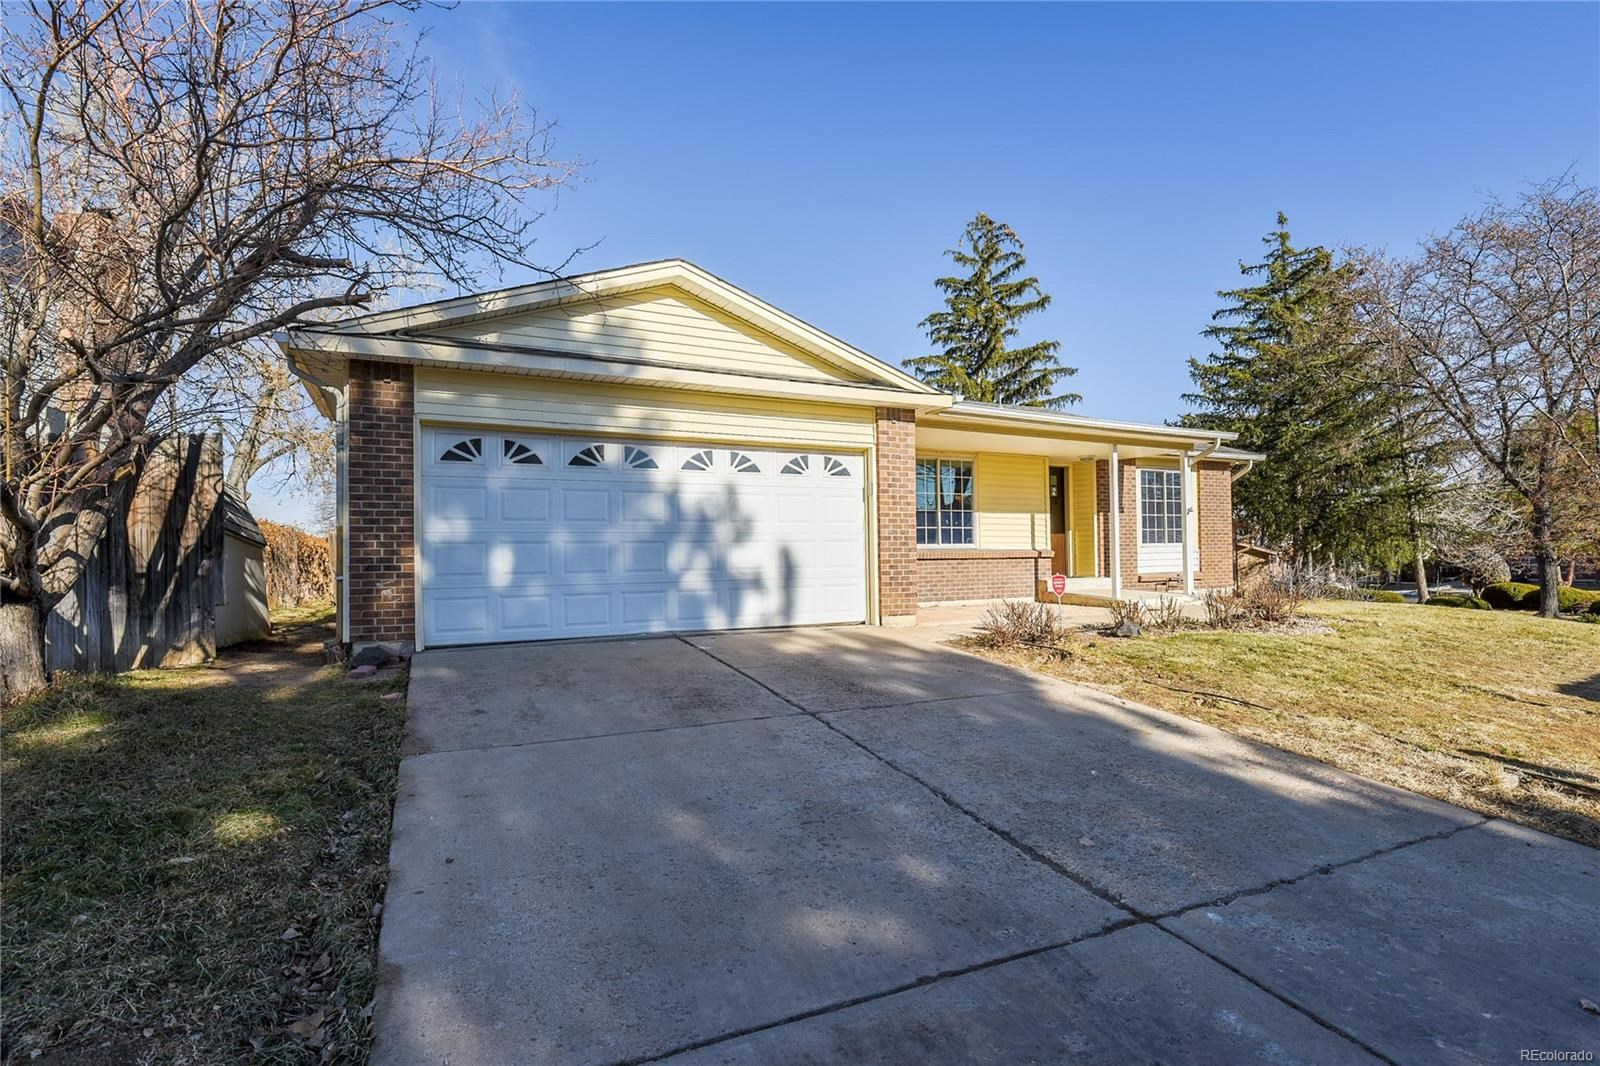 MLS# 8183776 - 35 - 2547 W 104th Circle, Westminster, CO 80234